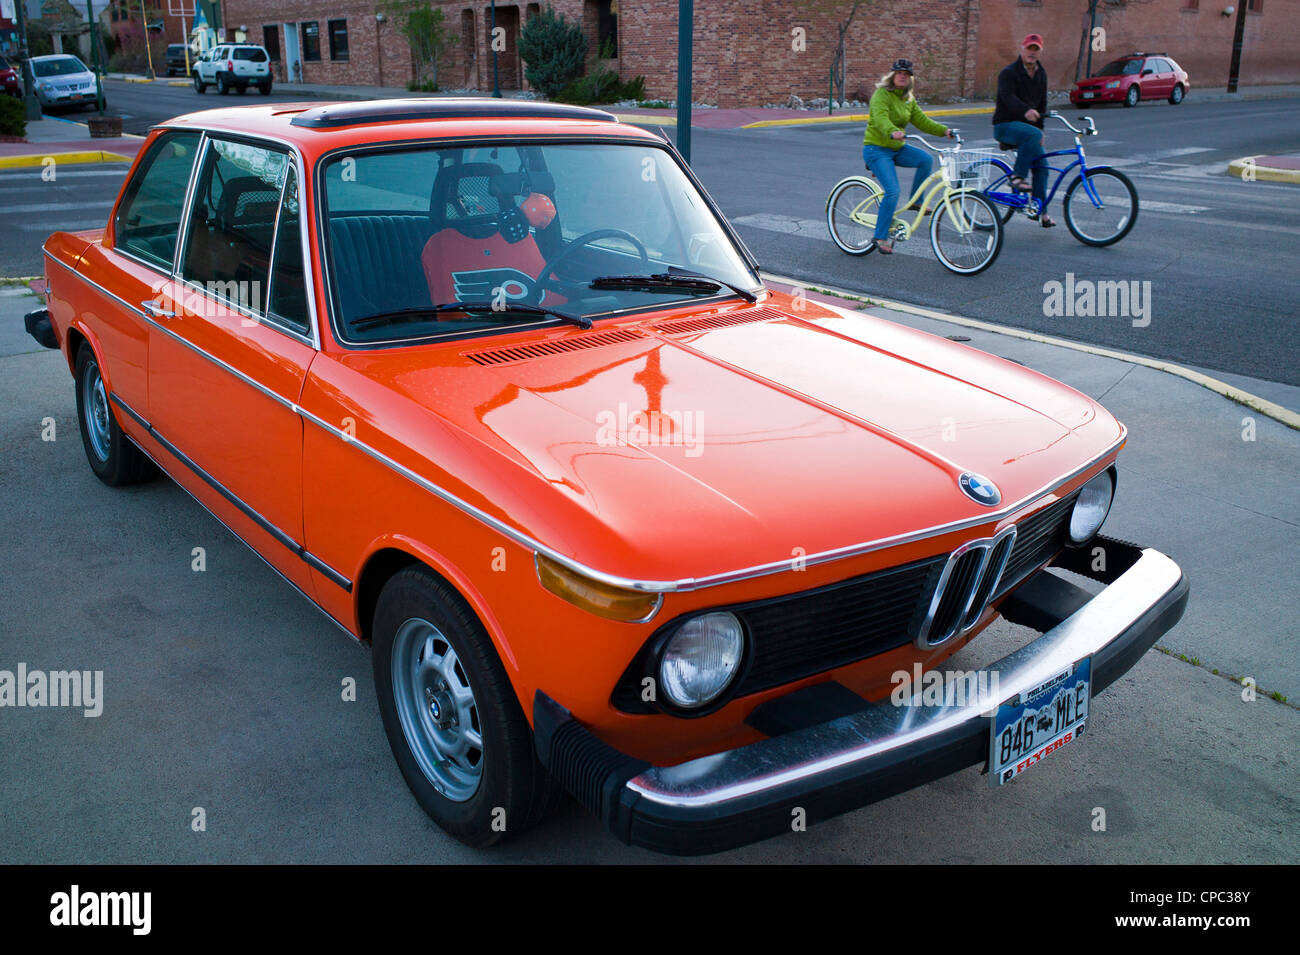 old bmw stockfotos old bmw bilder alamy. Black Bedroom Furniture Sets. Home Design Ideas